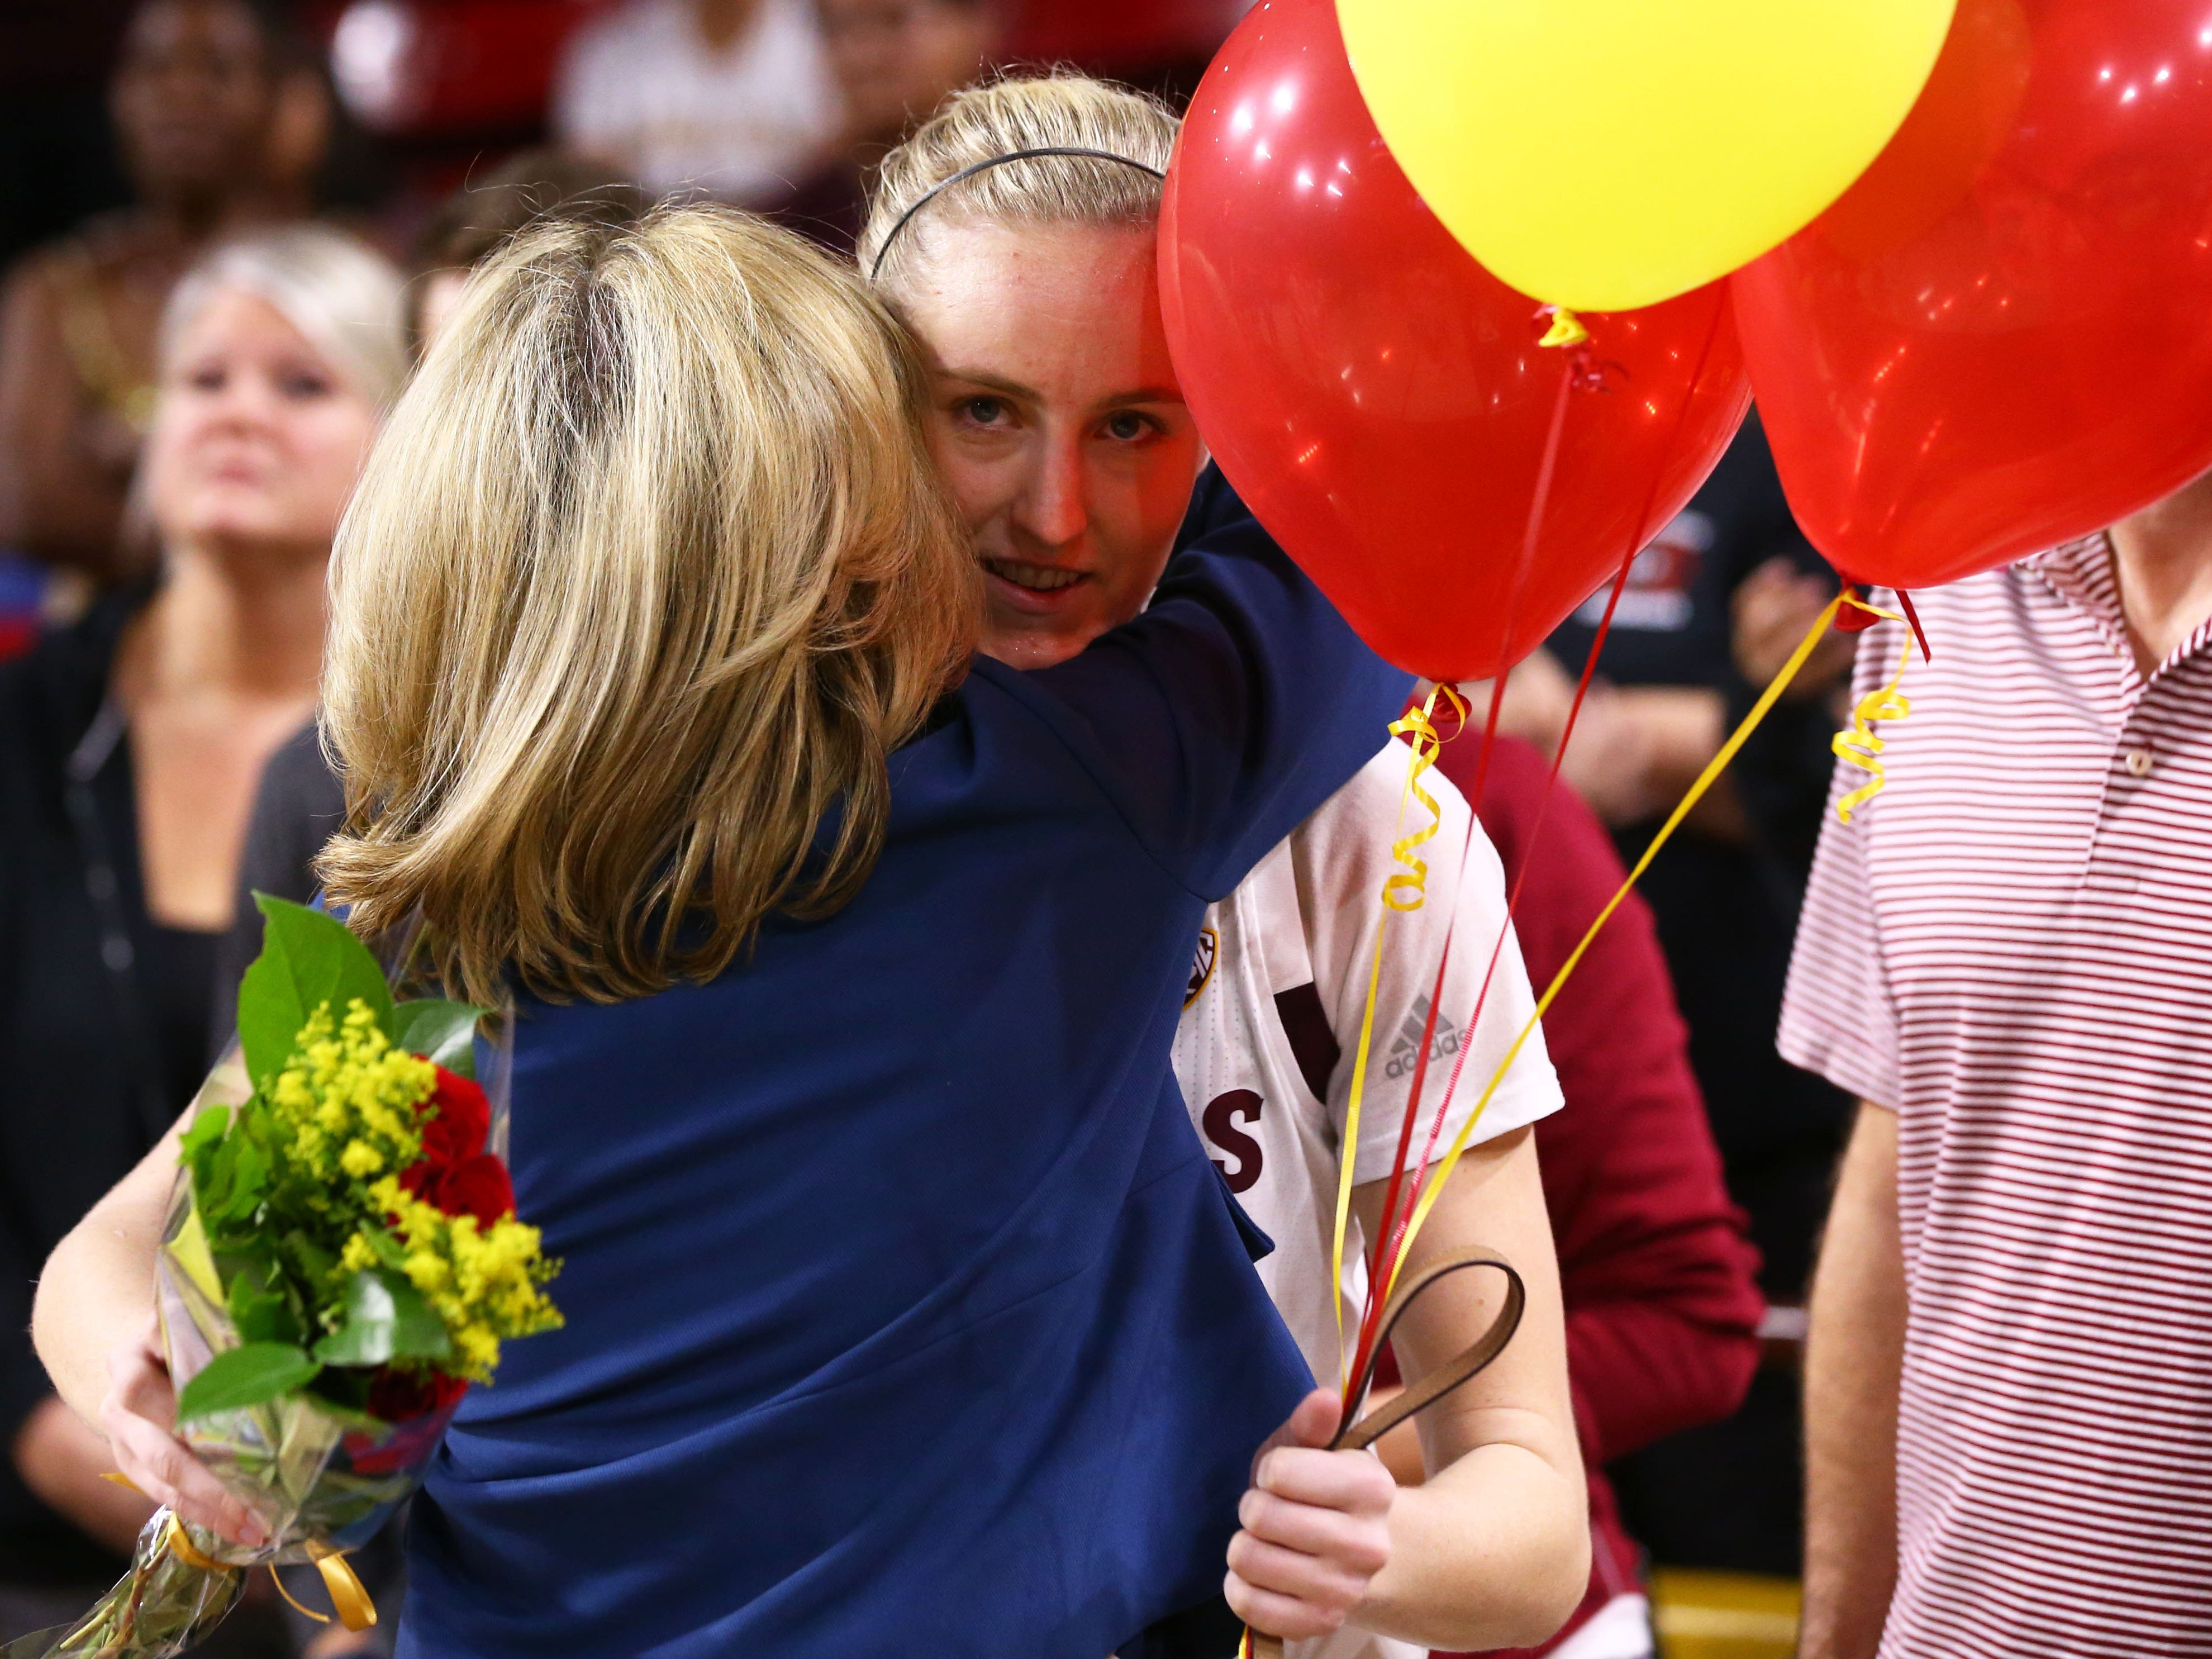 Arizona State Sun Devils guard Courtney Ekmark (22) is hugged by head coach Charli Turner Thorne during senior day ceremonies on Mar. 3, 2019, at Wells Fargo Arena in Tempe, Ariz.